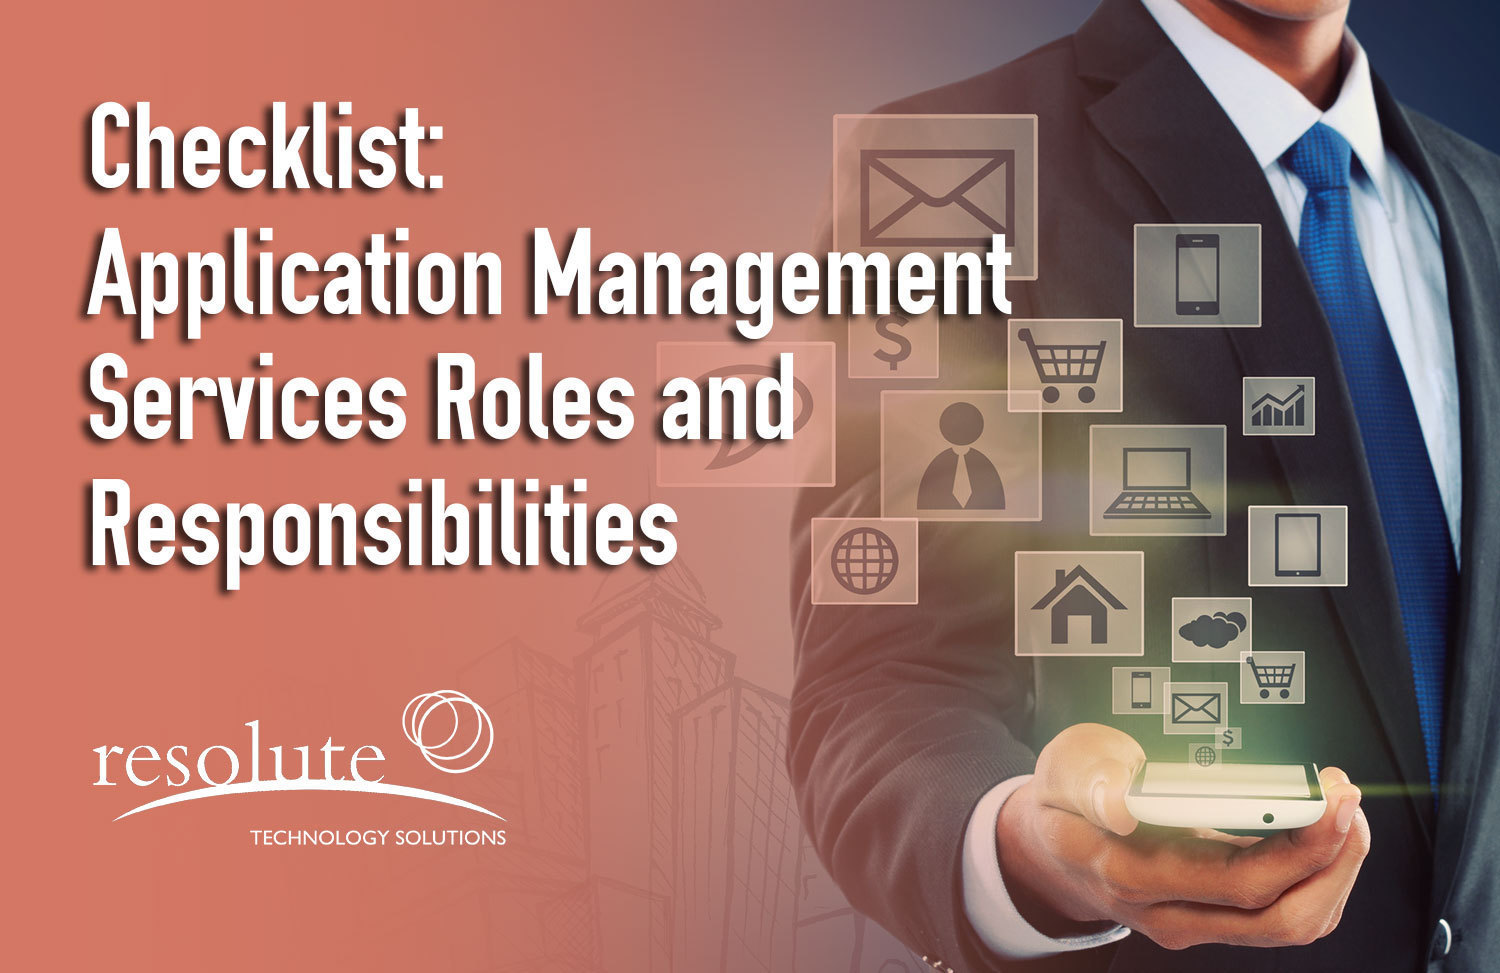 Application Management Services Roles and Responsibilities